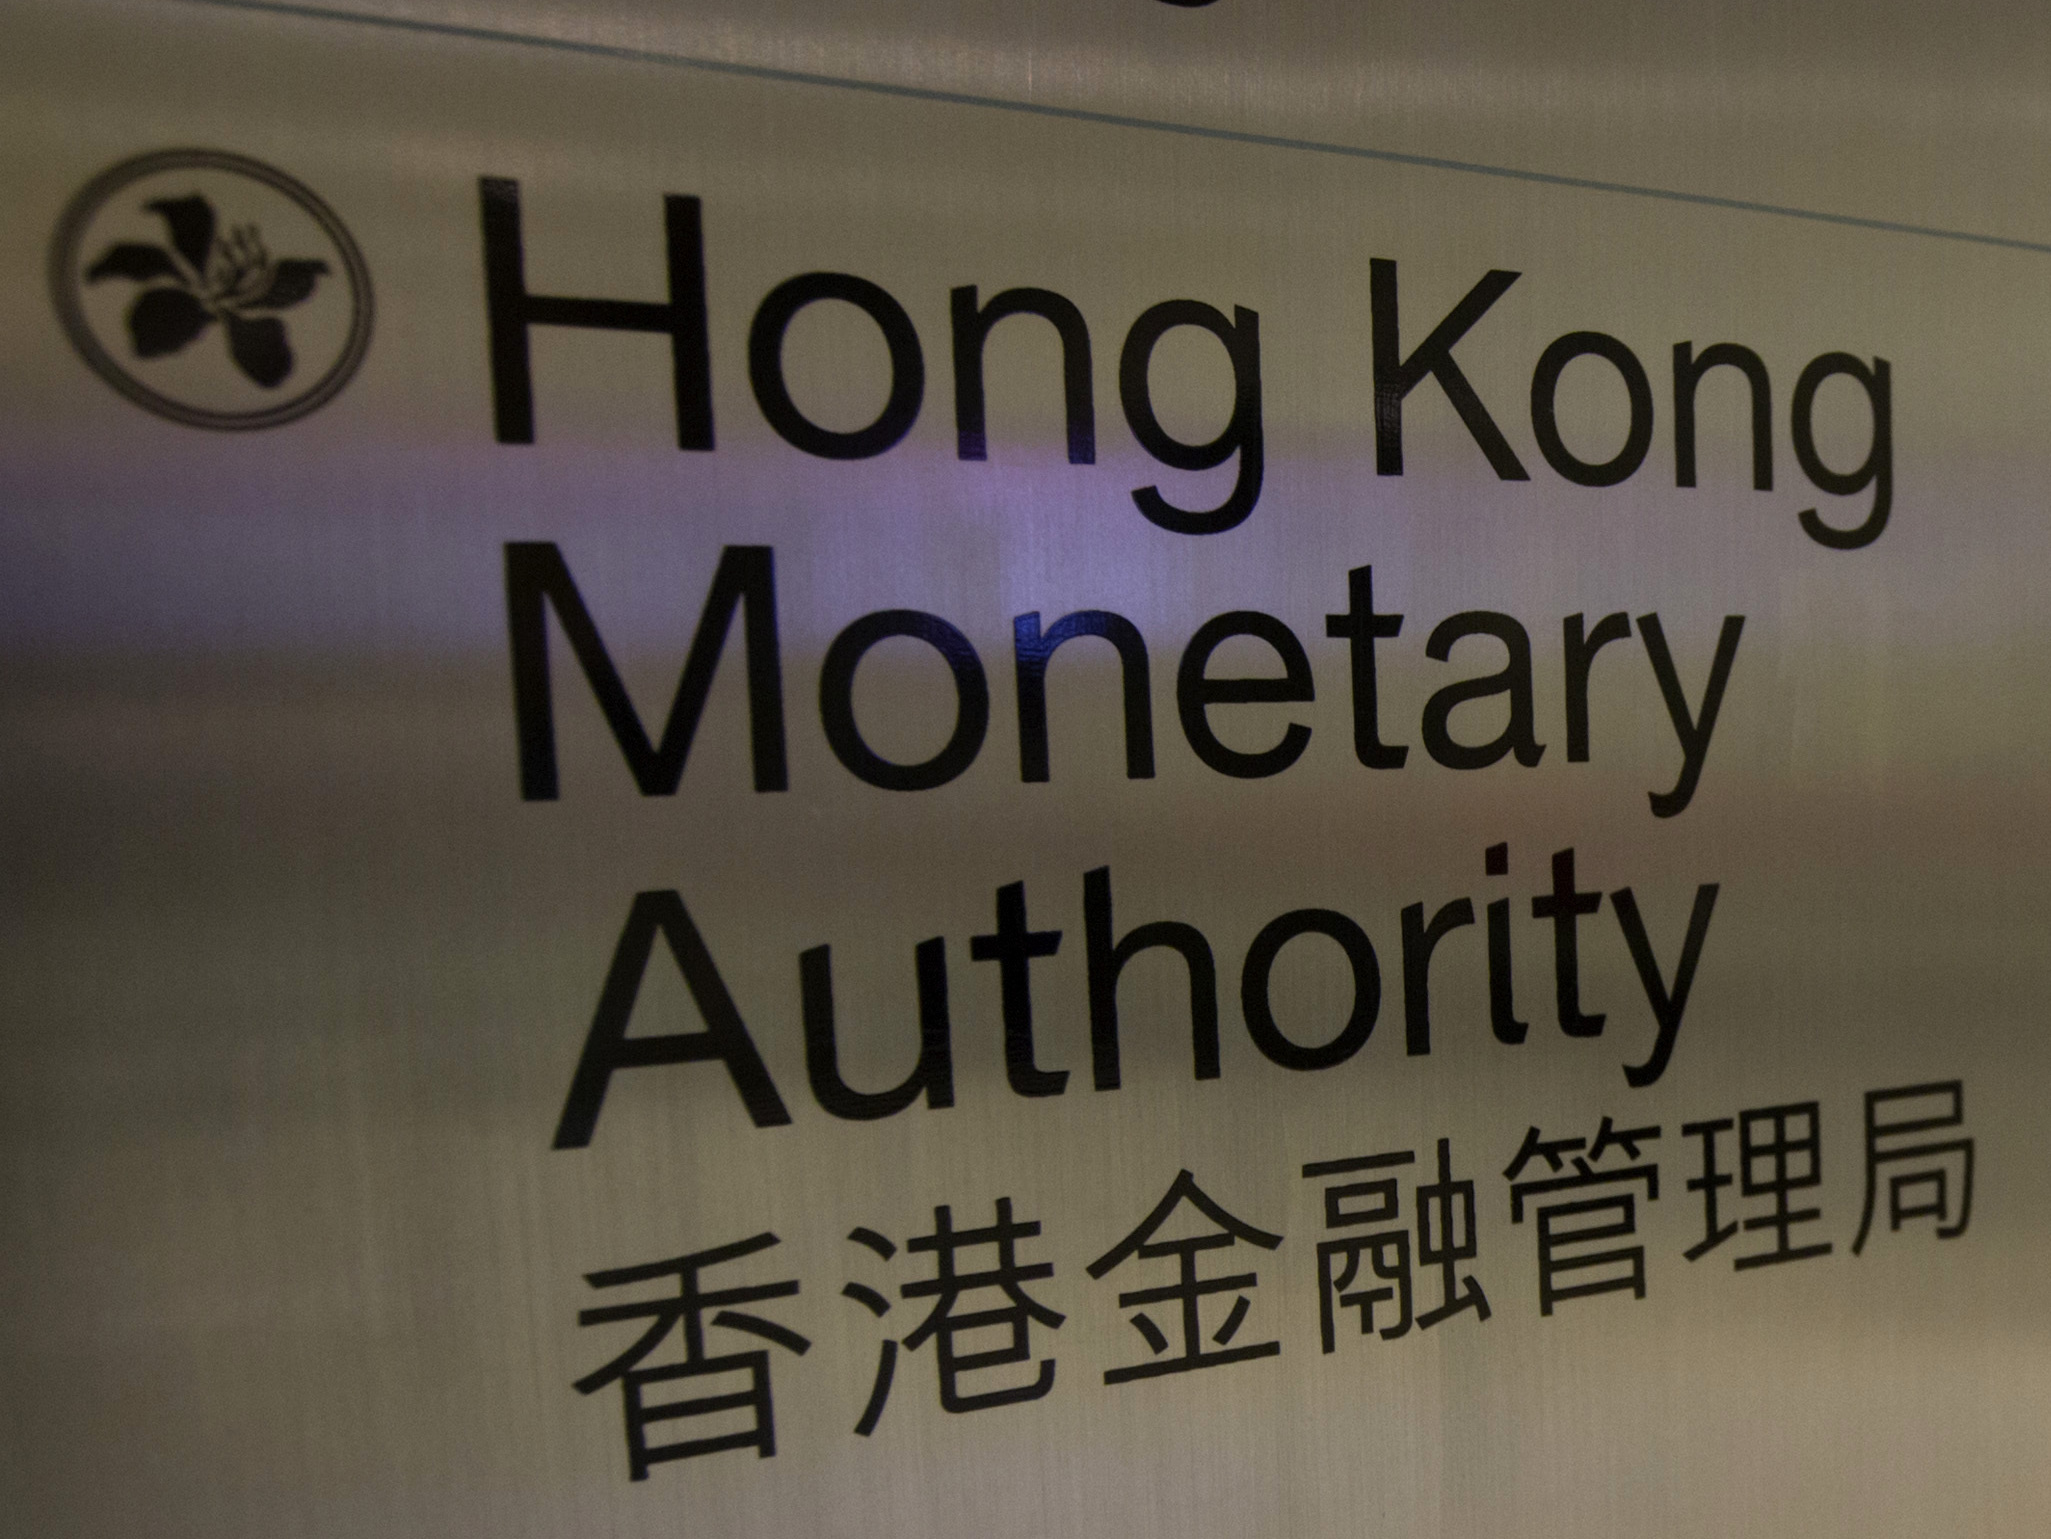 A directory board of Hong Kong Monetary Authority (HKMA) in Hong Kong. The territory's de facto central bank said evidence shows UBS tried to manipulate the interbank lending rate.